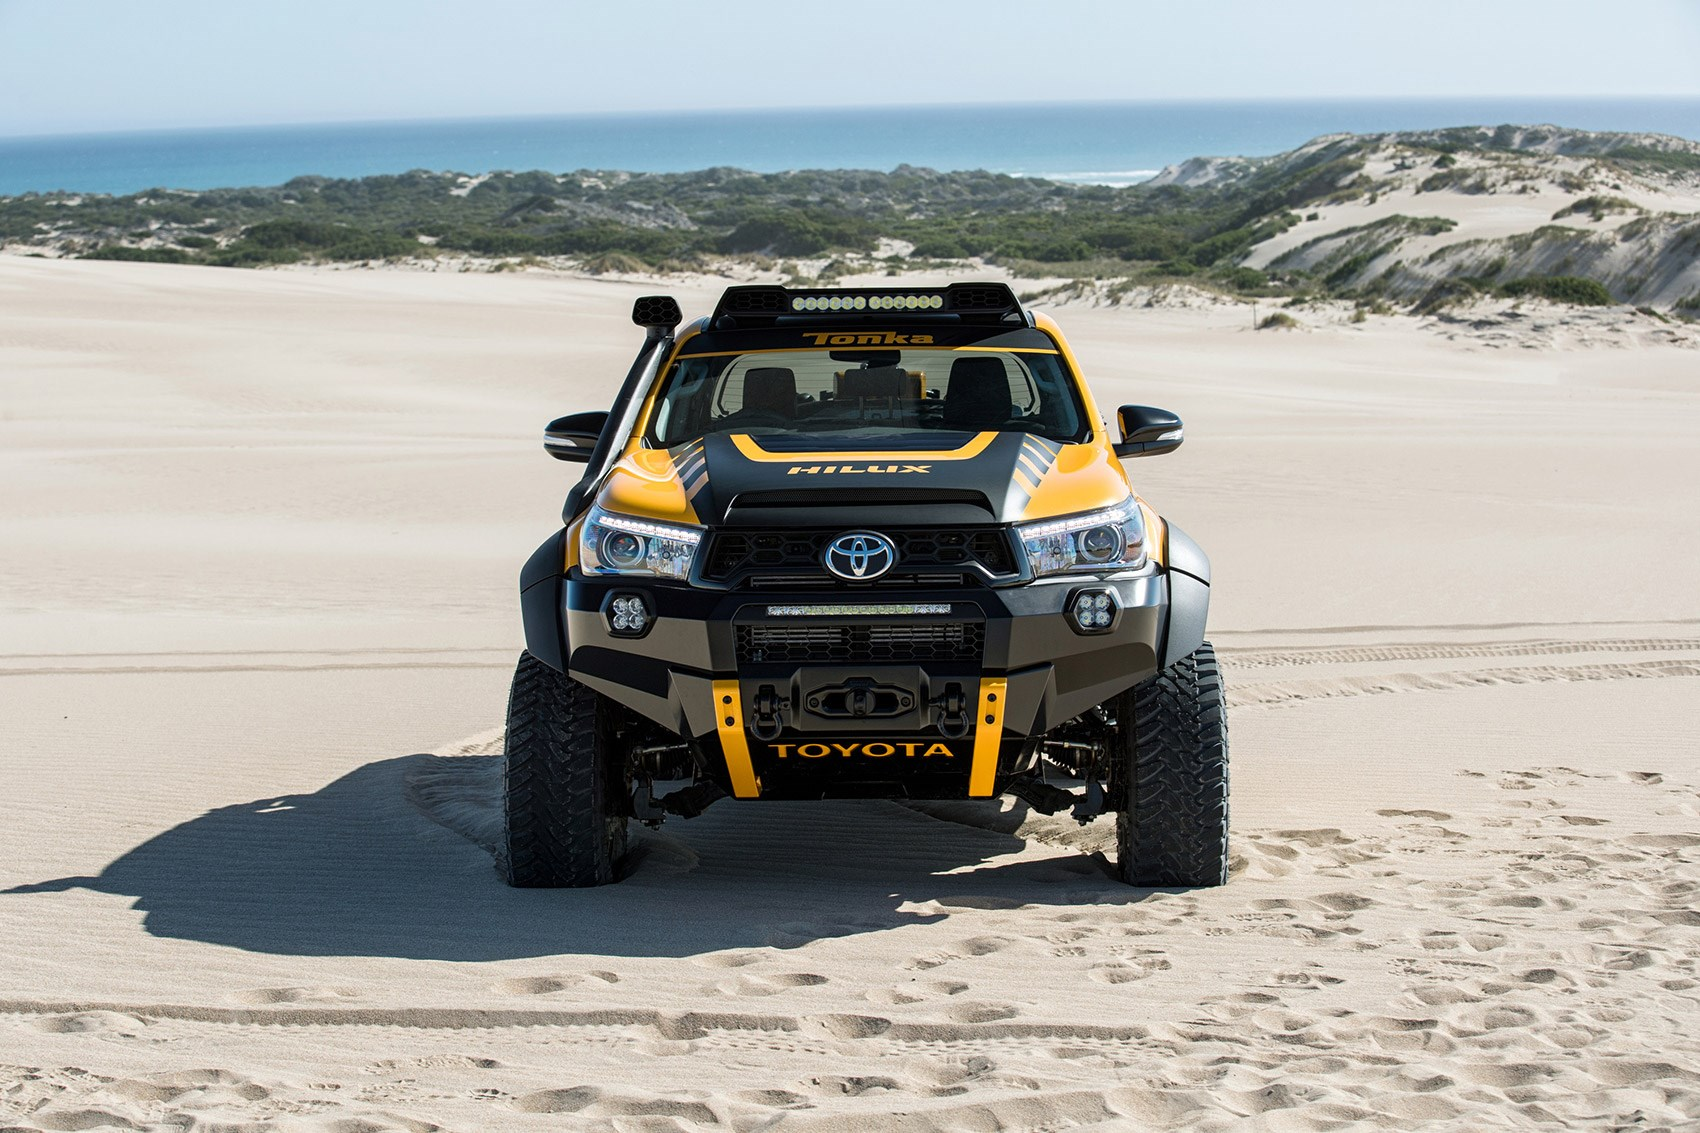 The Tonka Toyota One Off Toy Hilux Built Car Magazine